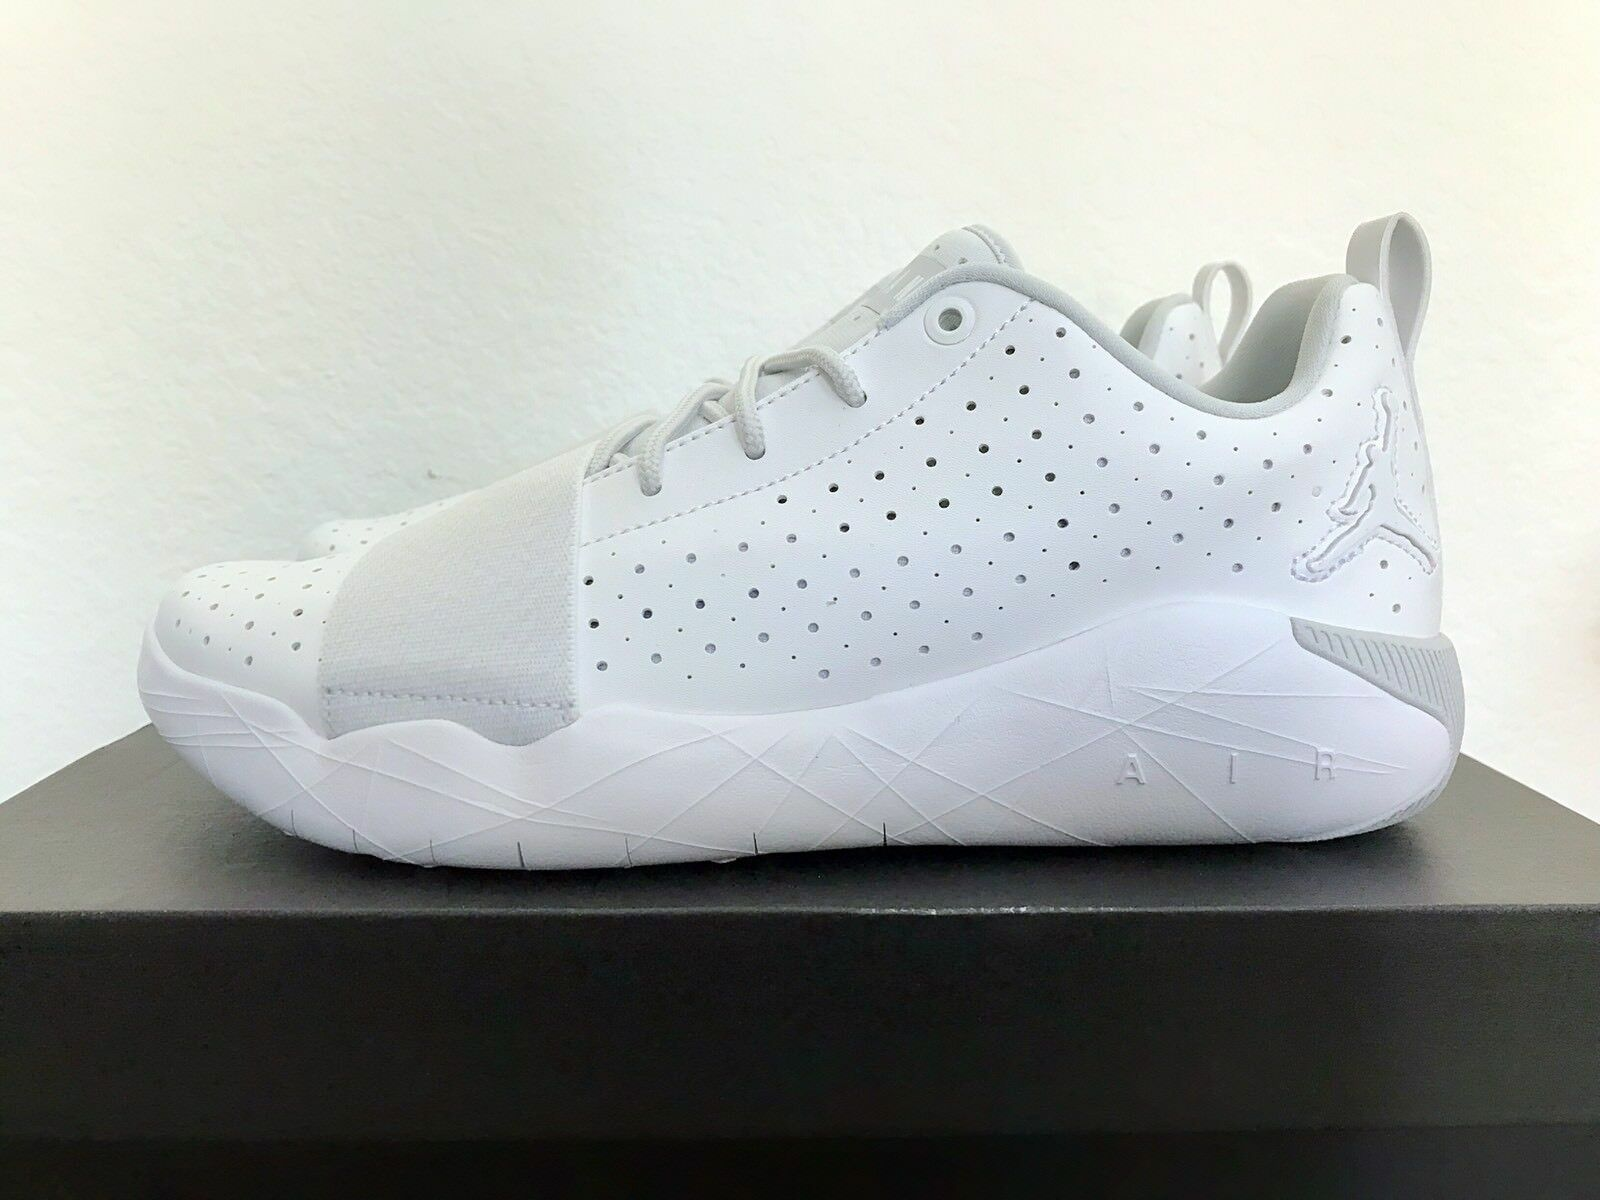 NIKE Jordan 23 Breakout Mens Running shoes 881449 100 size 8.5 RTL 115 New White